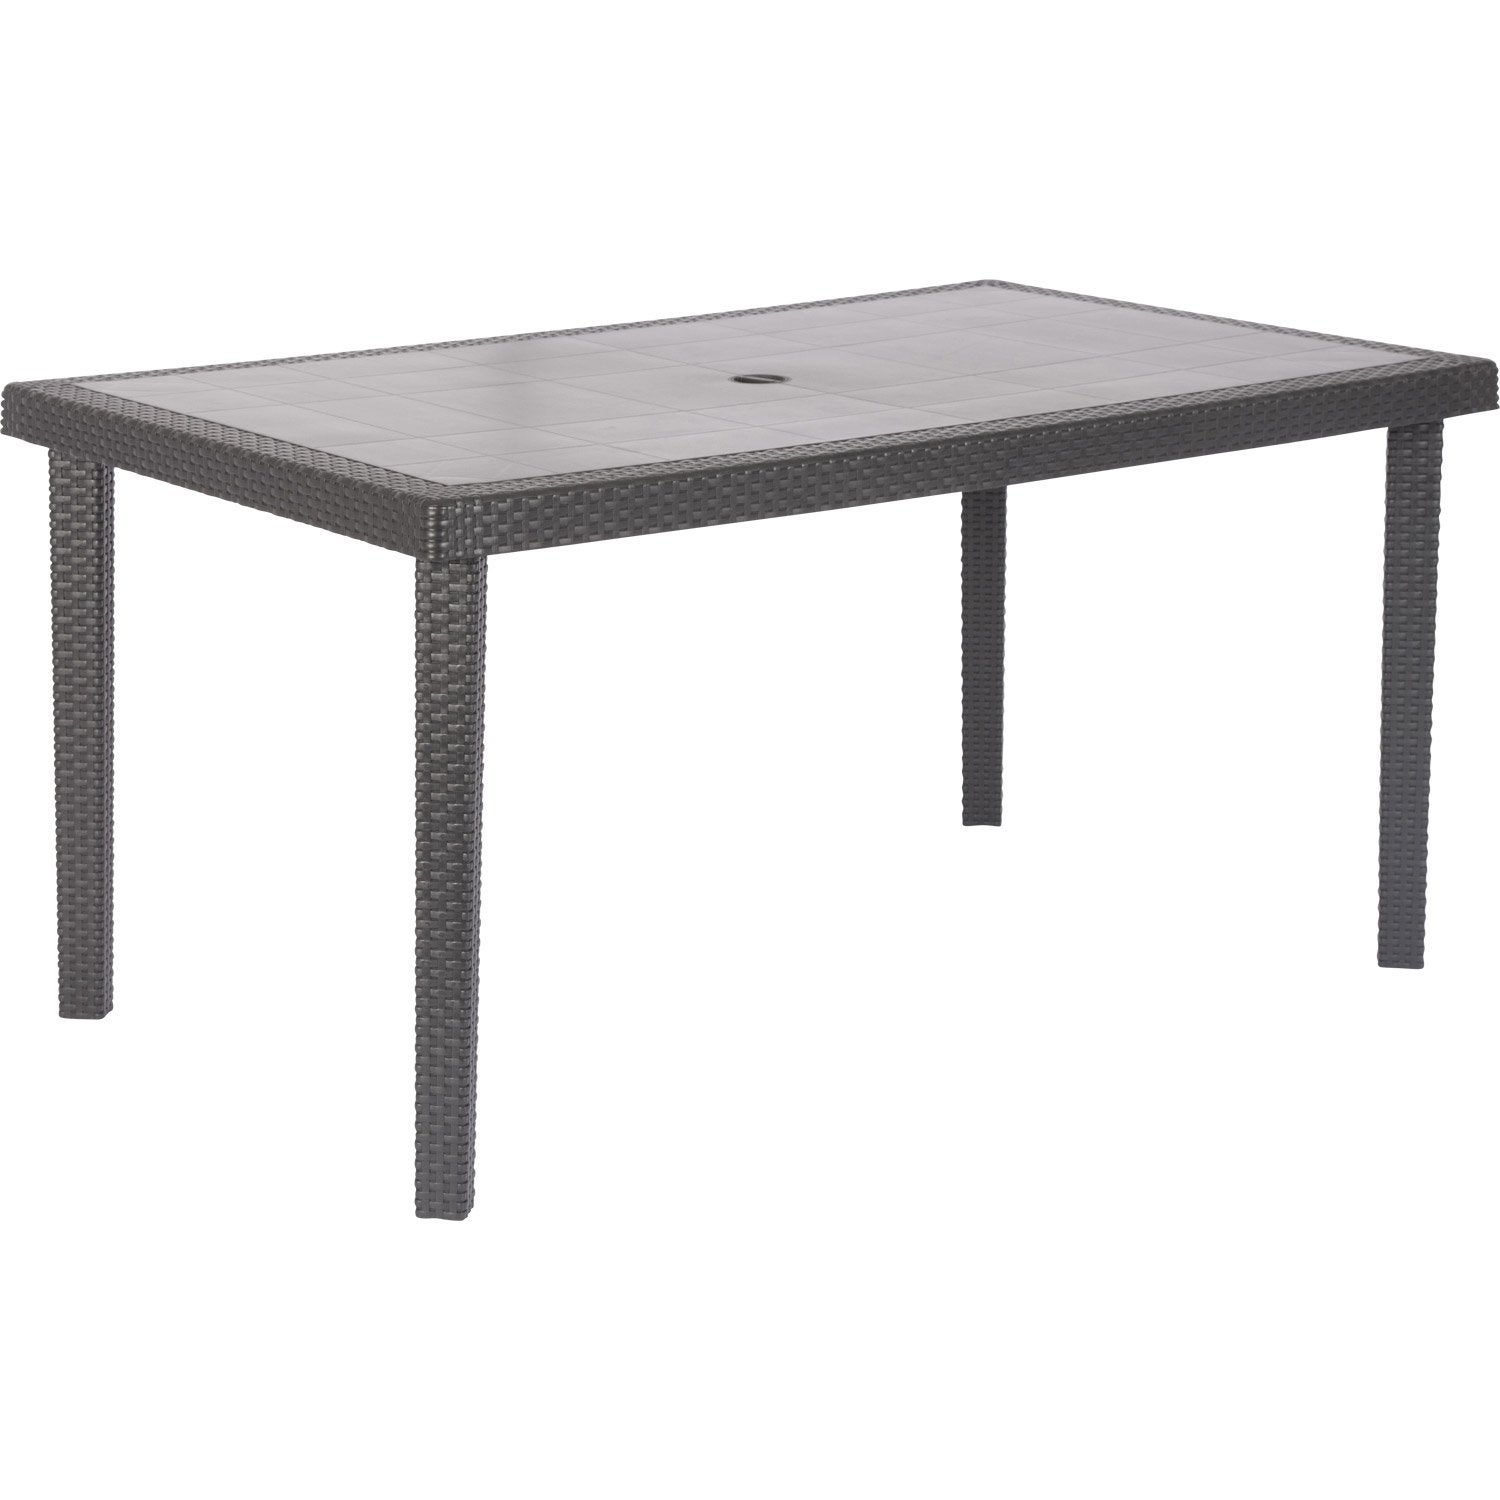 Table de jardin boh me rectangulaire anthracite 6 for Table de nuit leroy merlin